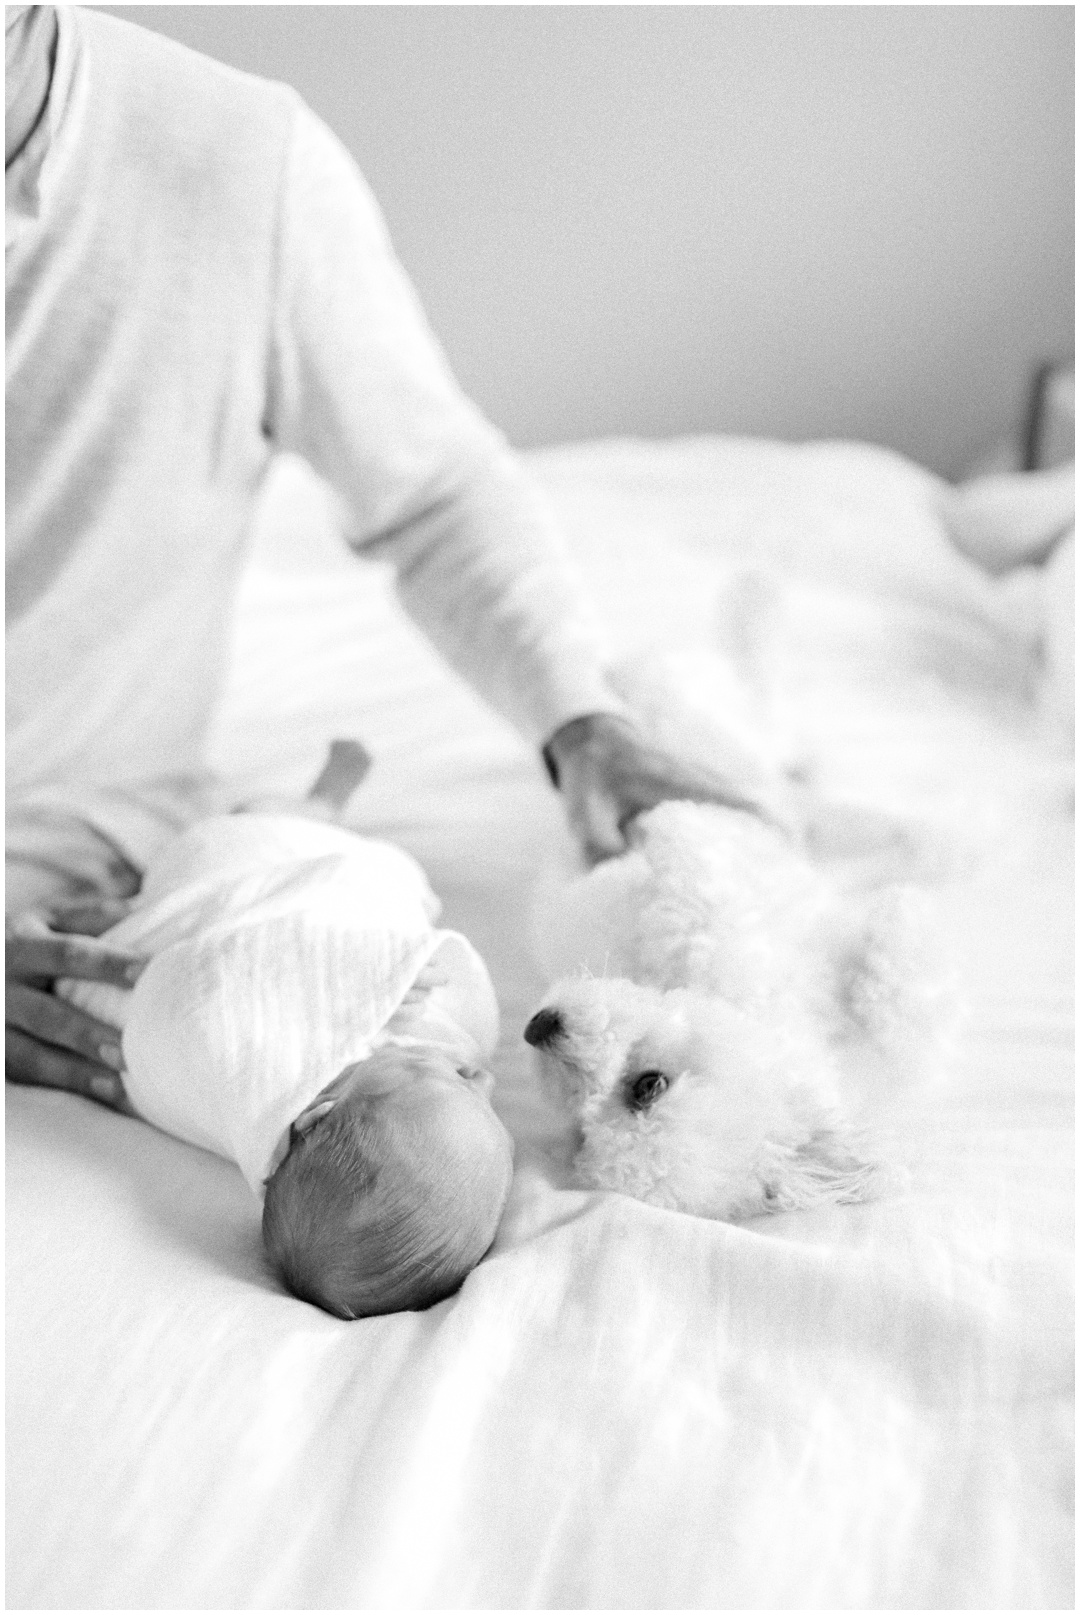 Newport_Beach_Newborn_Light_Airy_Natural_Photographer_Newport_Beach_Photographer_Orange_County_Family_Photographer_Cori_Kleckner_Photography_Huntington_Beach_Photographer_Family_OC_Newborn_Megan_Bradley_Schueneman_Charlie_Schueneman_Dean__3600.jpg